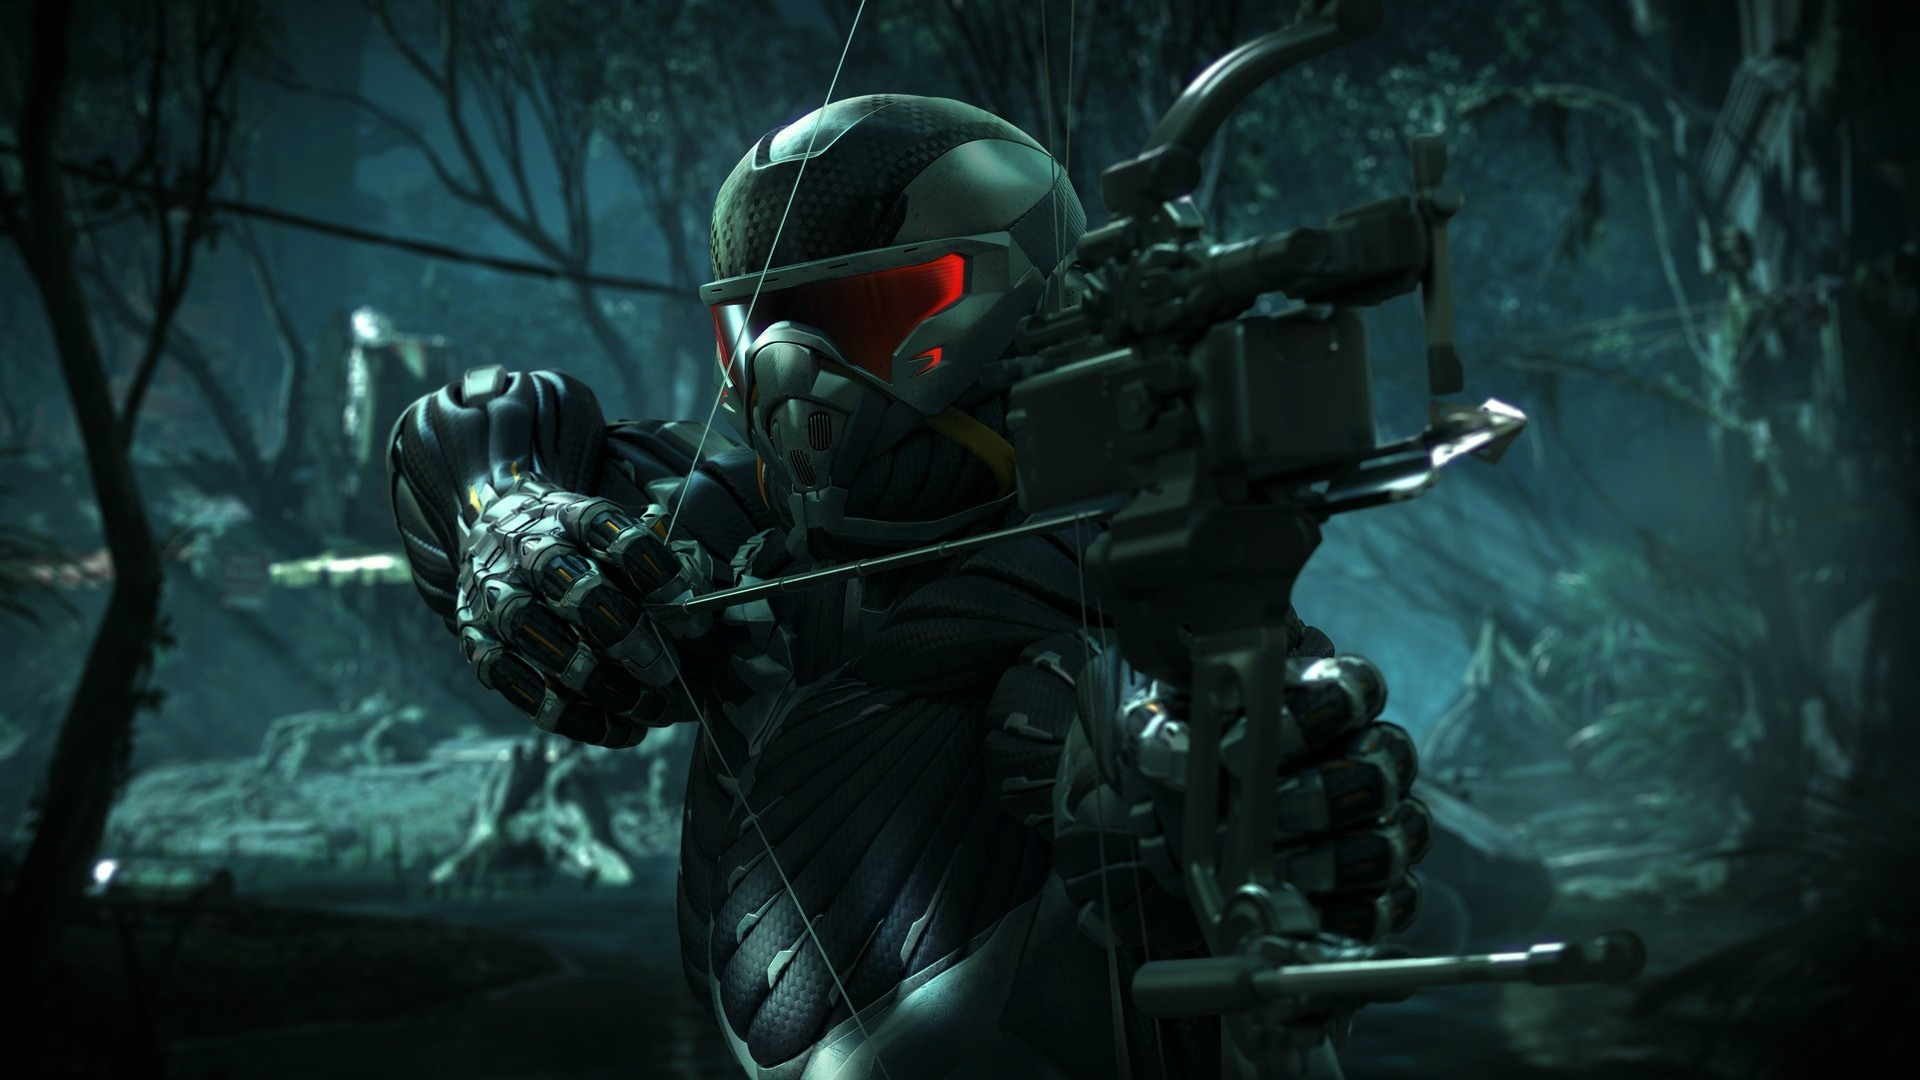 Crysis 3 HD game wallp...